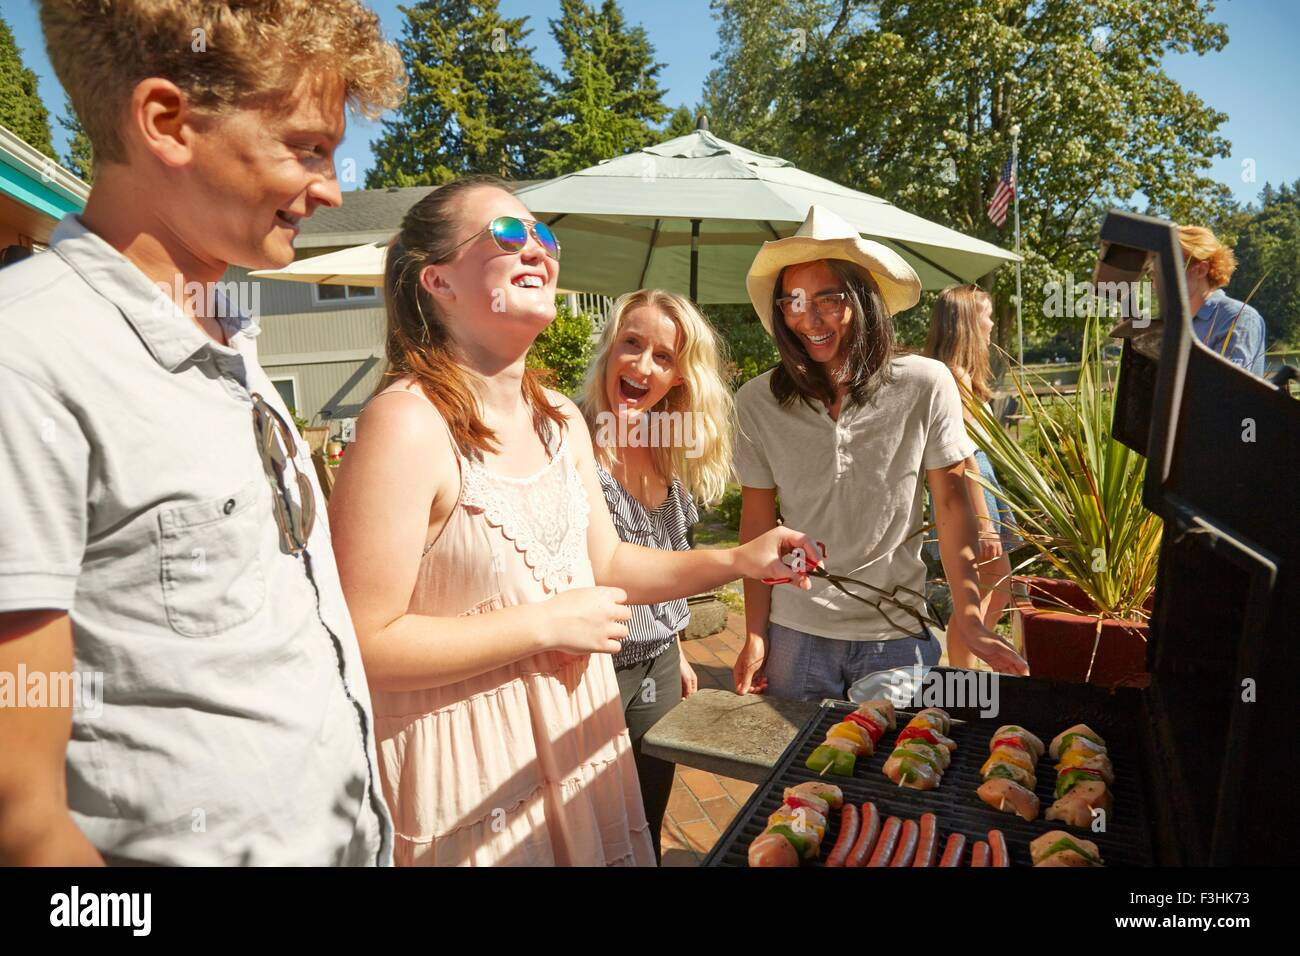 Friends at barbecue party - Stock Image